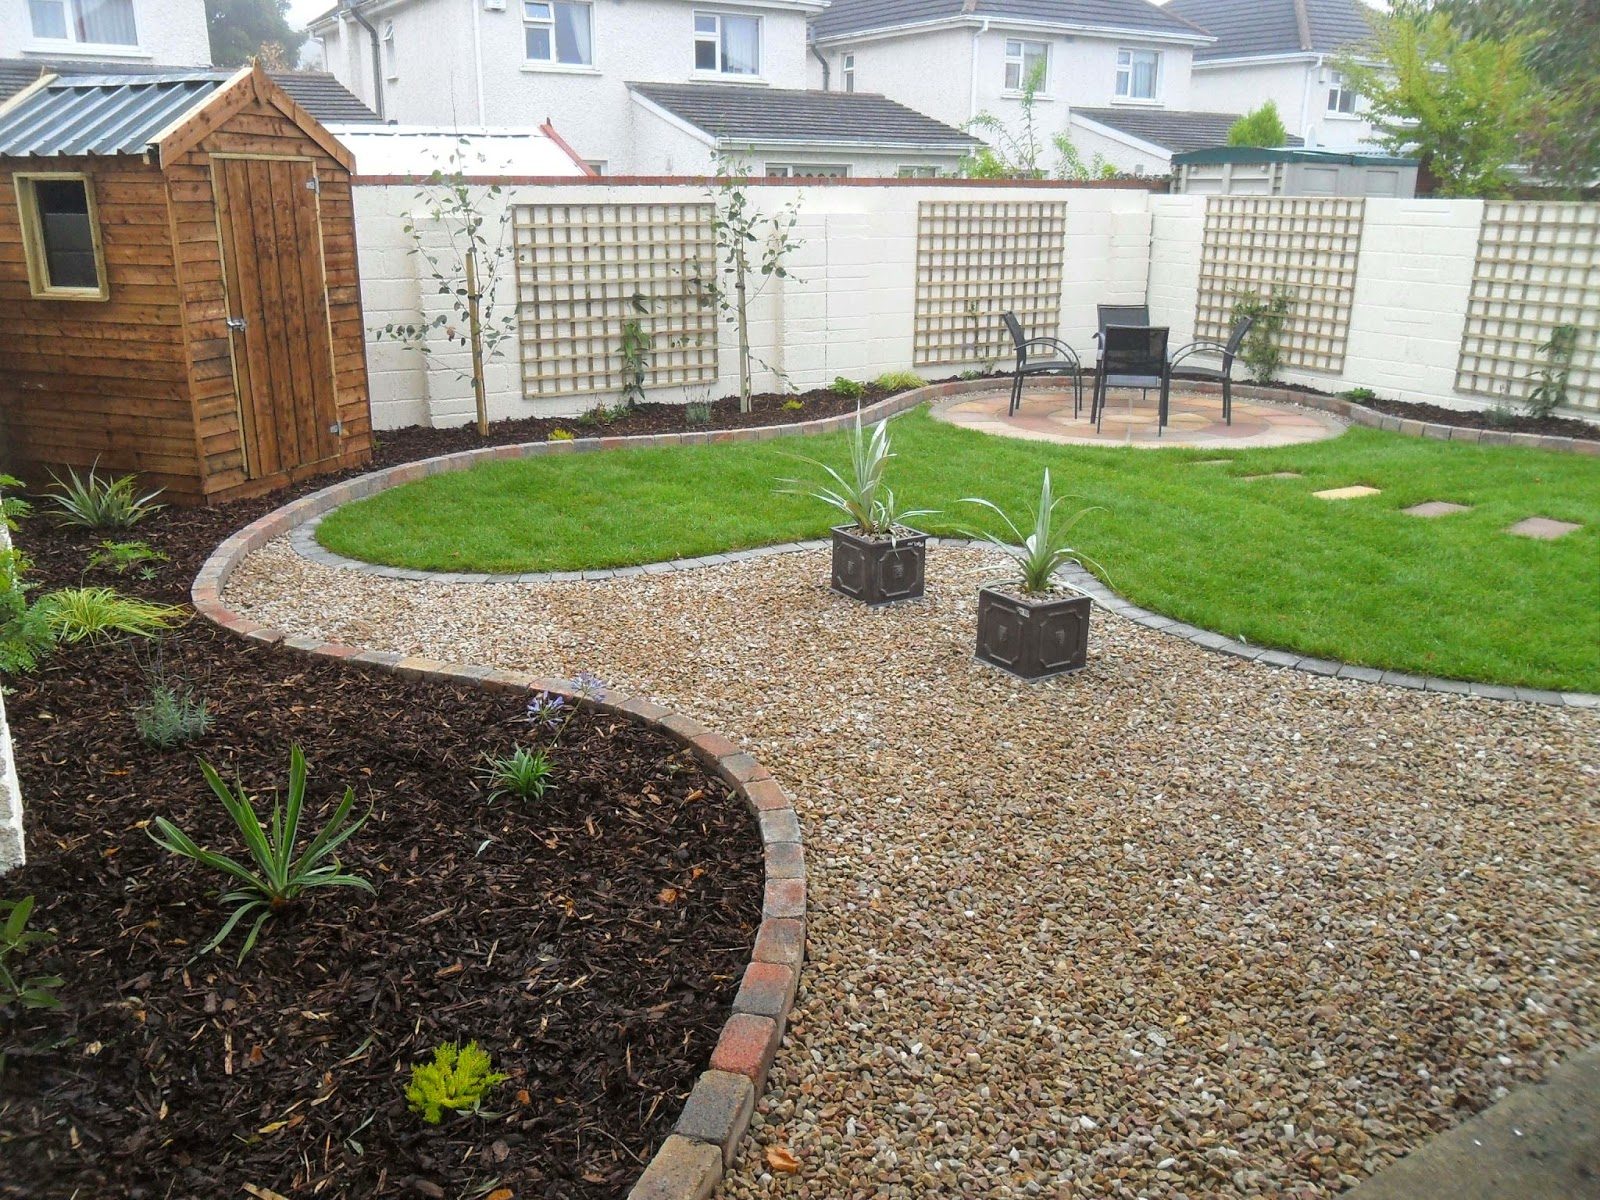 Greenart landscapes garden design construction and for Gravel garden designs